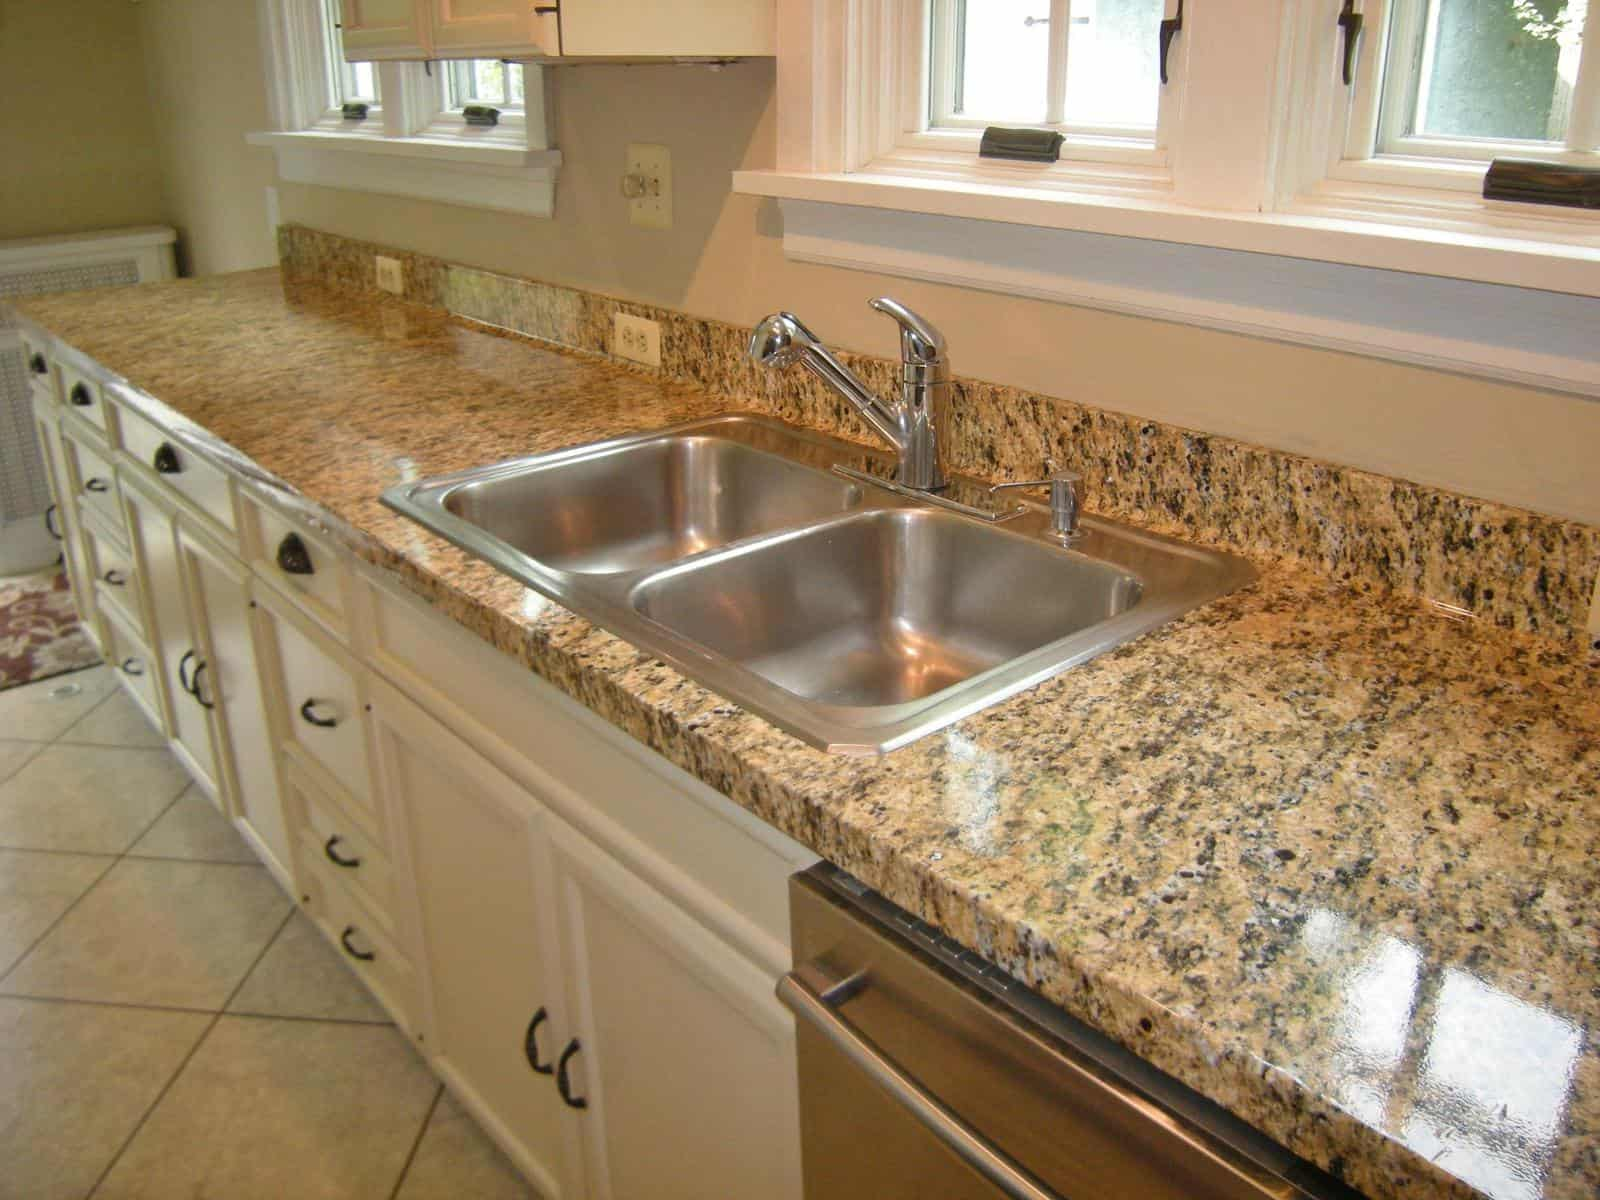 Genial Faug Granite Film On Kitchen Counter AFTER